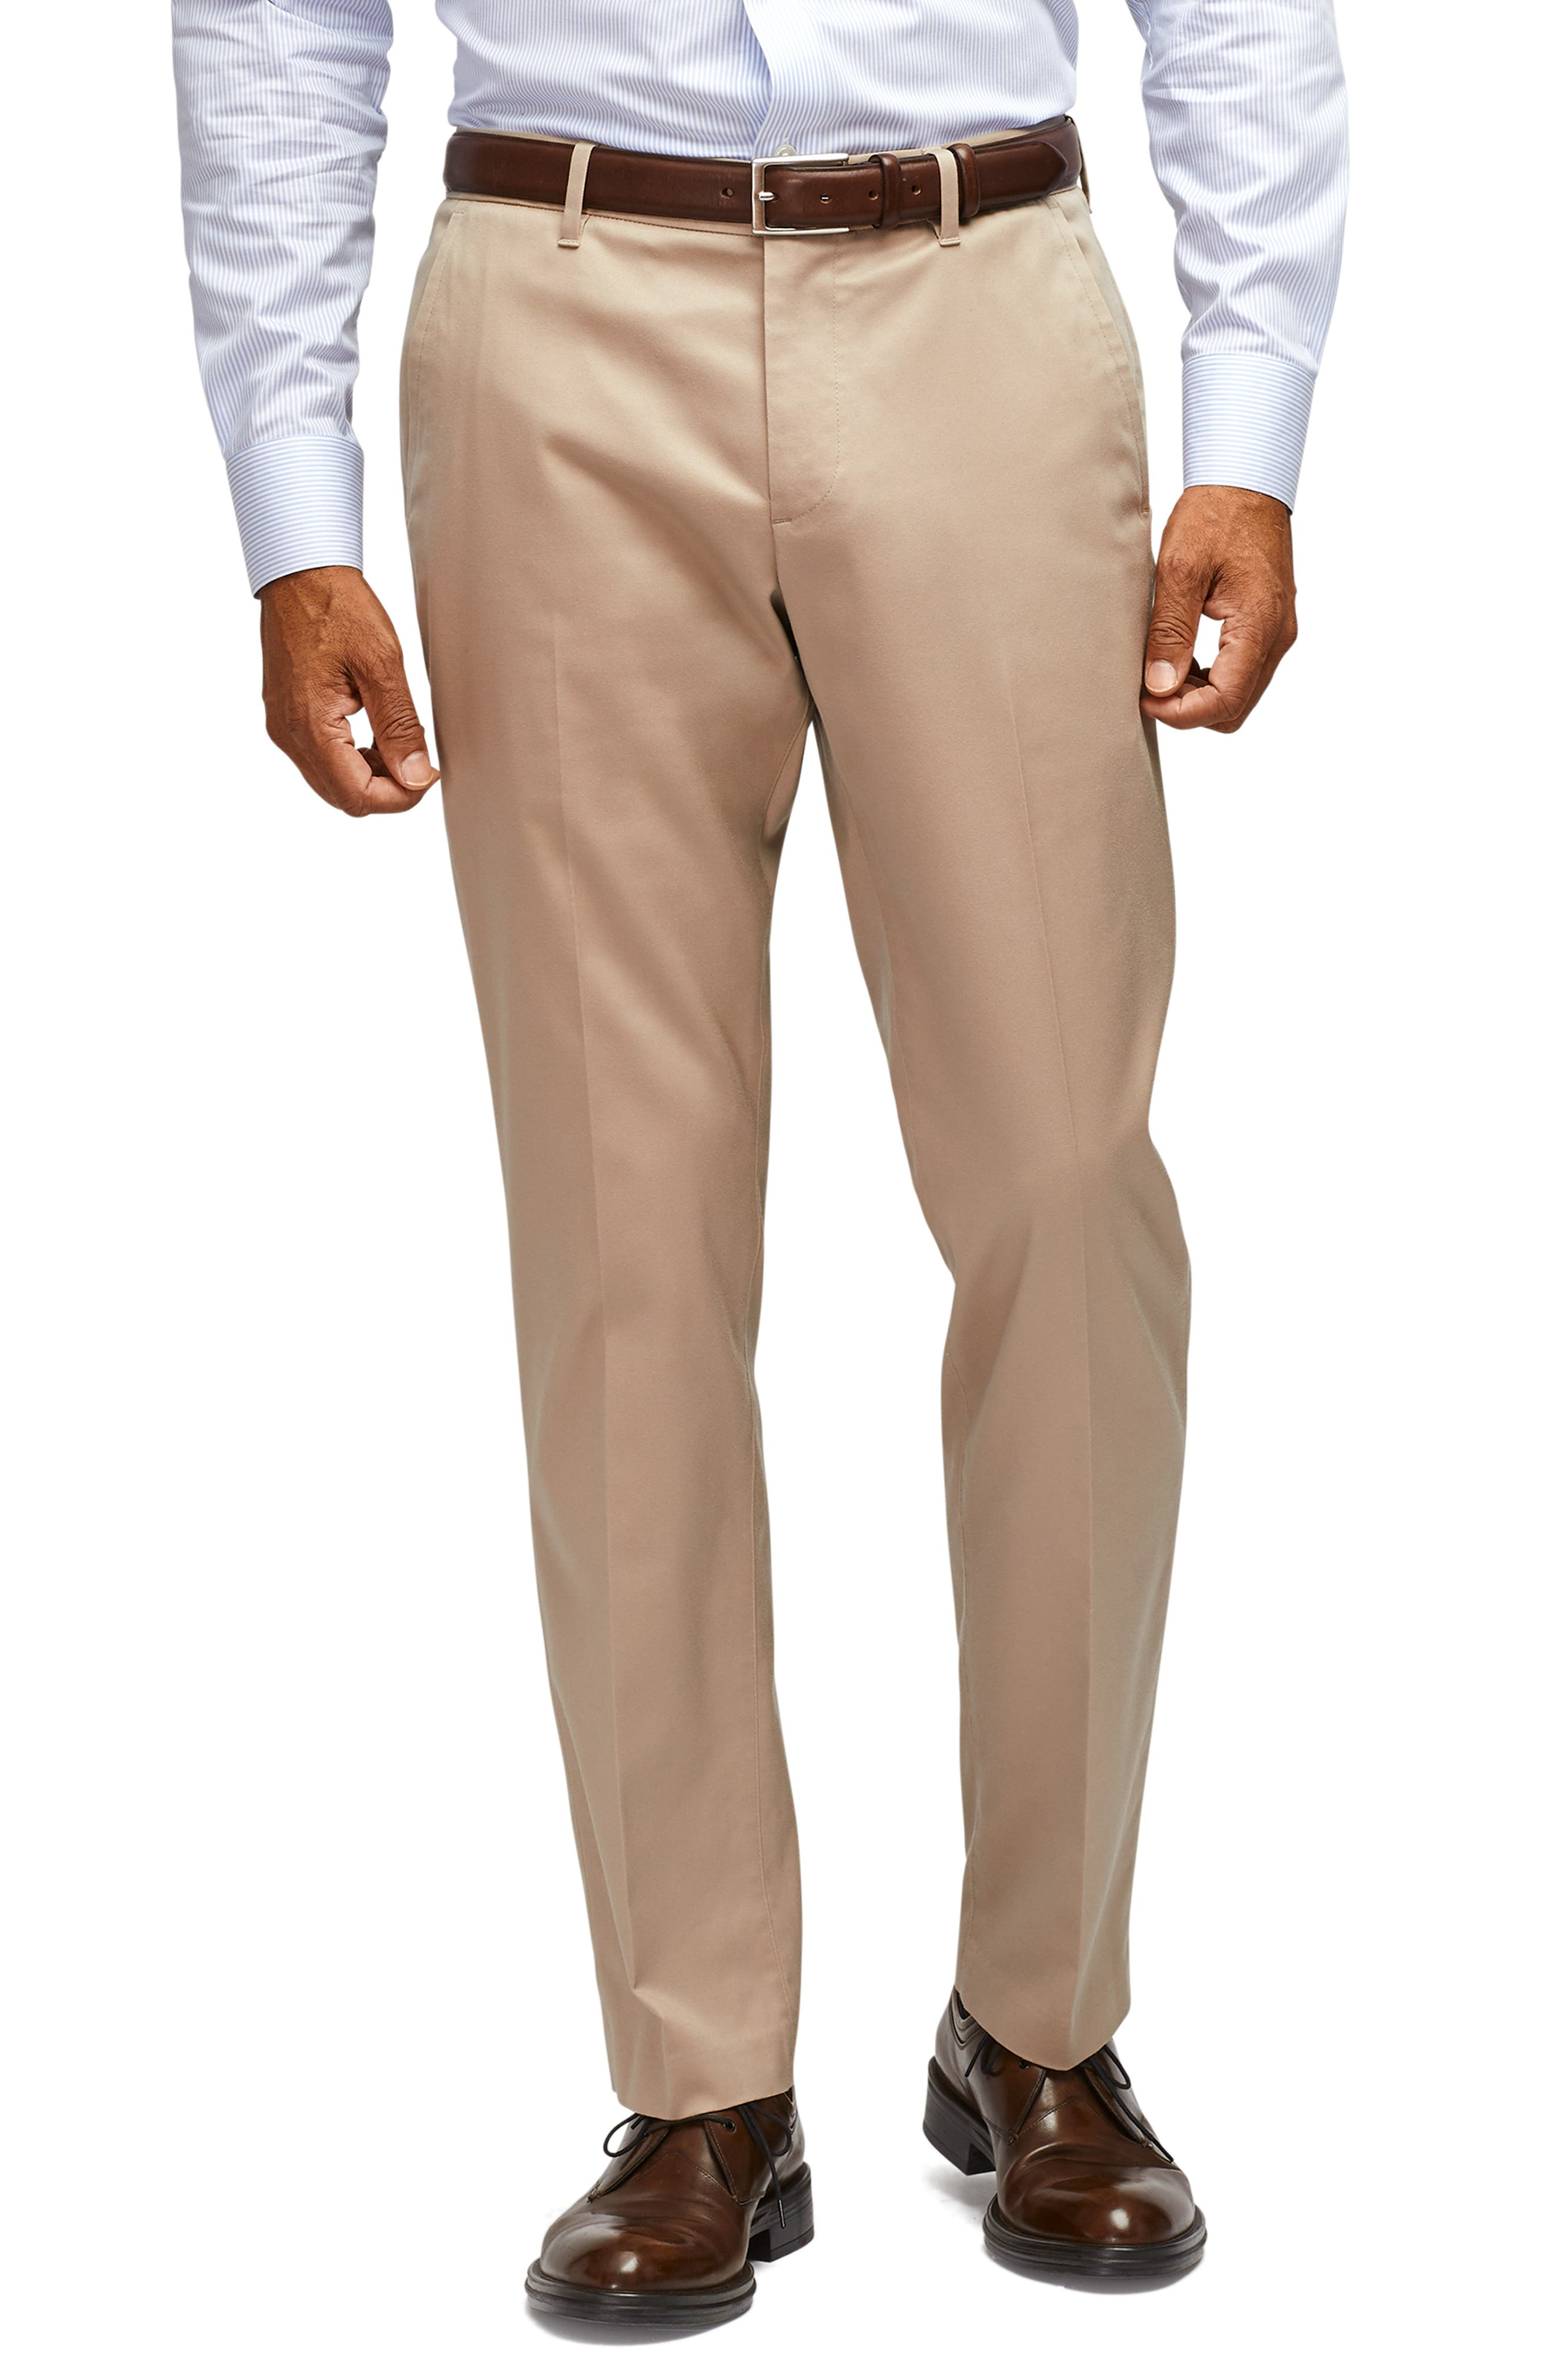 A sharp look for any day of the week, these flat-front pants are made from soft, easy-care stretch fabric and cut for a trim (but not tight) fit. Style Name: Bonobos Stretch Weekday Warrior Slim Fit Dress Pants. Style Number: 5647316 7. Available in stores.